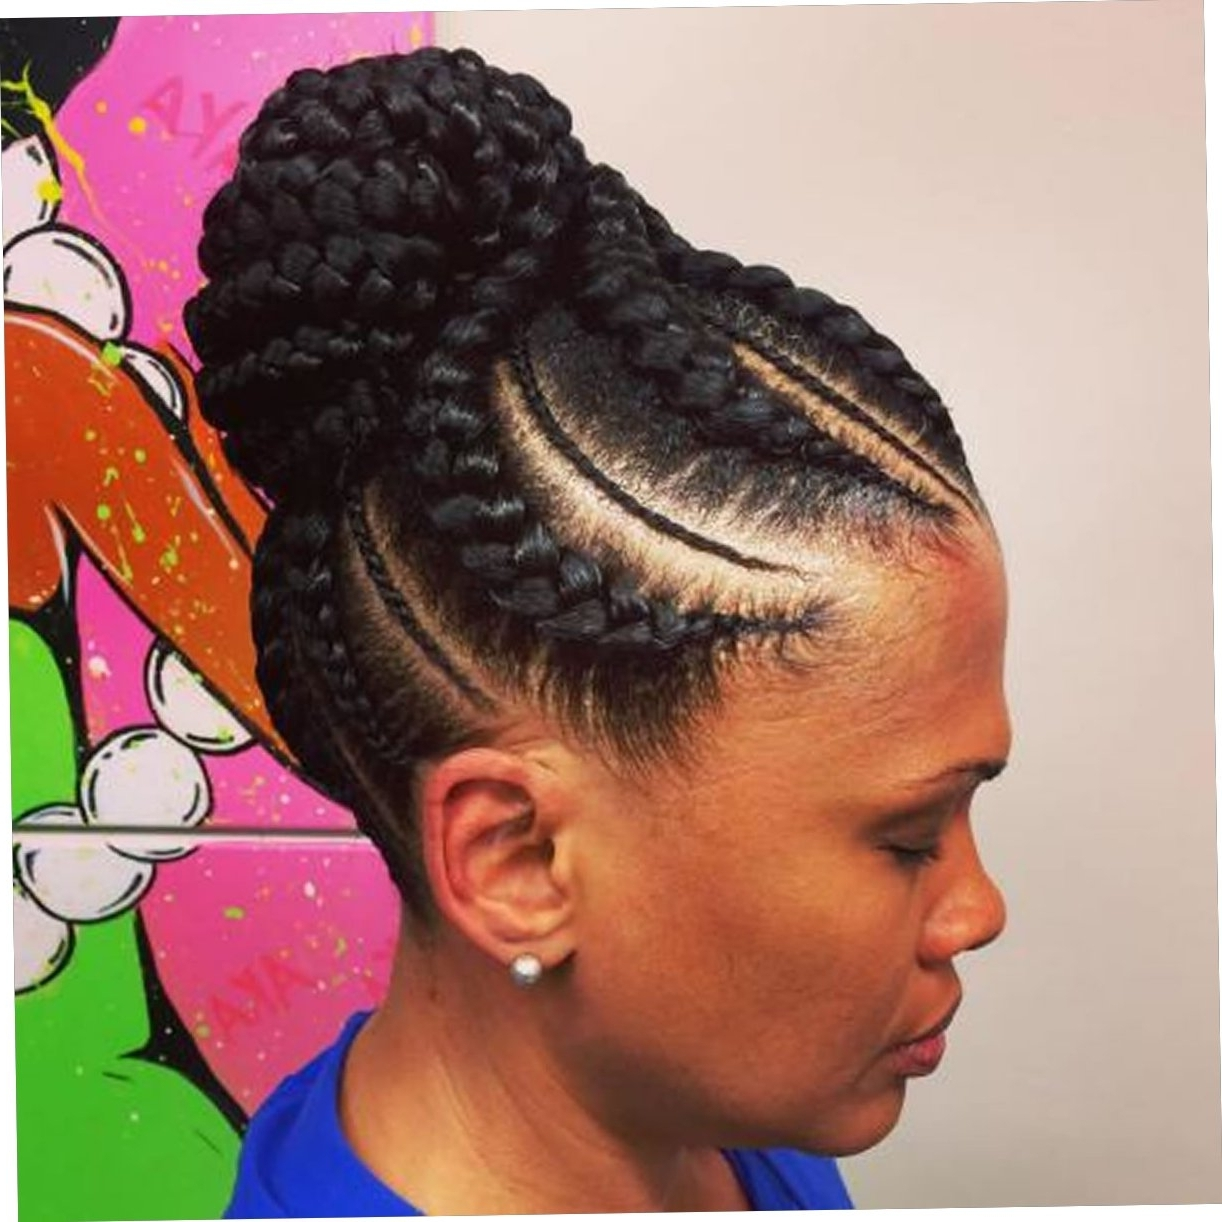 20 Best African American Braided Hairstyles For Women 2017 2018 With Regard To Well Liked African American Braided Hairstyles (View 8 of 15)